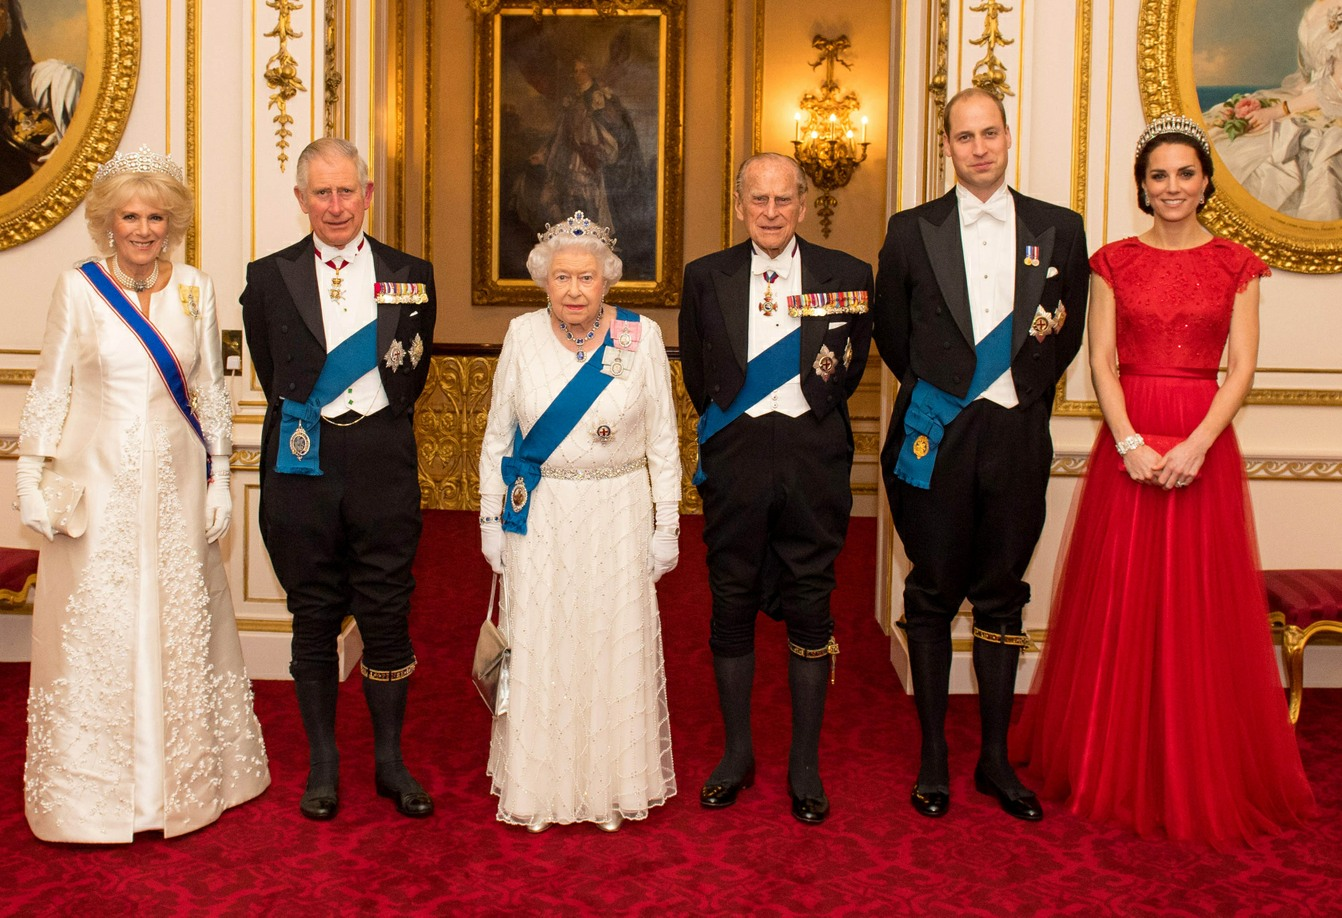 The Duchess of Cornwall, the Prince of Wales, Queen Elizabeth II, the Duke of Edinburgh and the Duke and Duchess of Cambridge attend the Diplomatic Corps reception at Buckingham Palace  bitchy | Will the Queen give Duchess Kate her first royal honor this yr? 160073PCN DiplomaticRoyalsMGS002